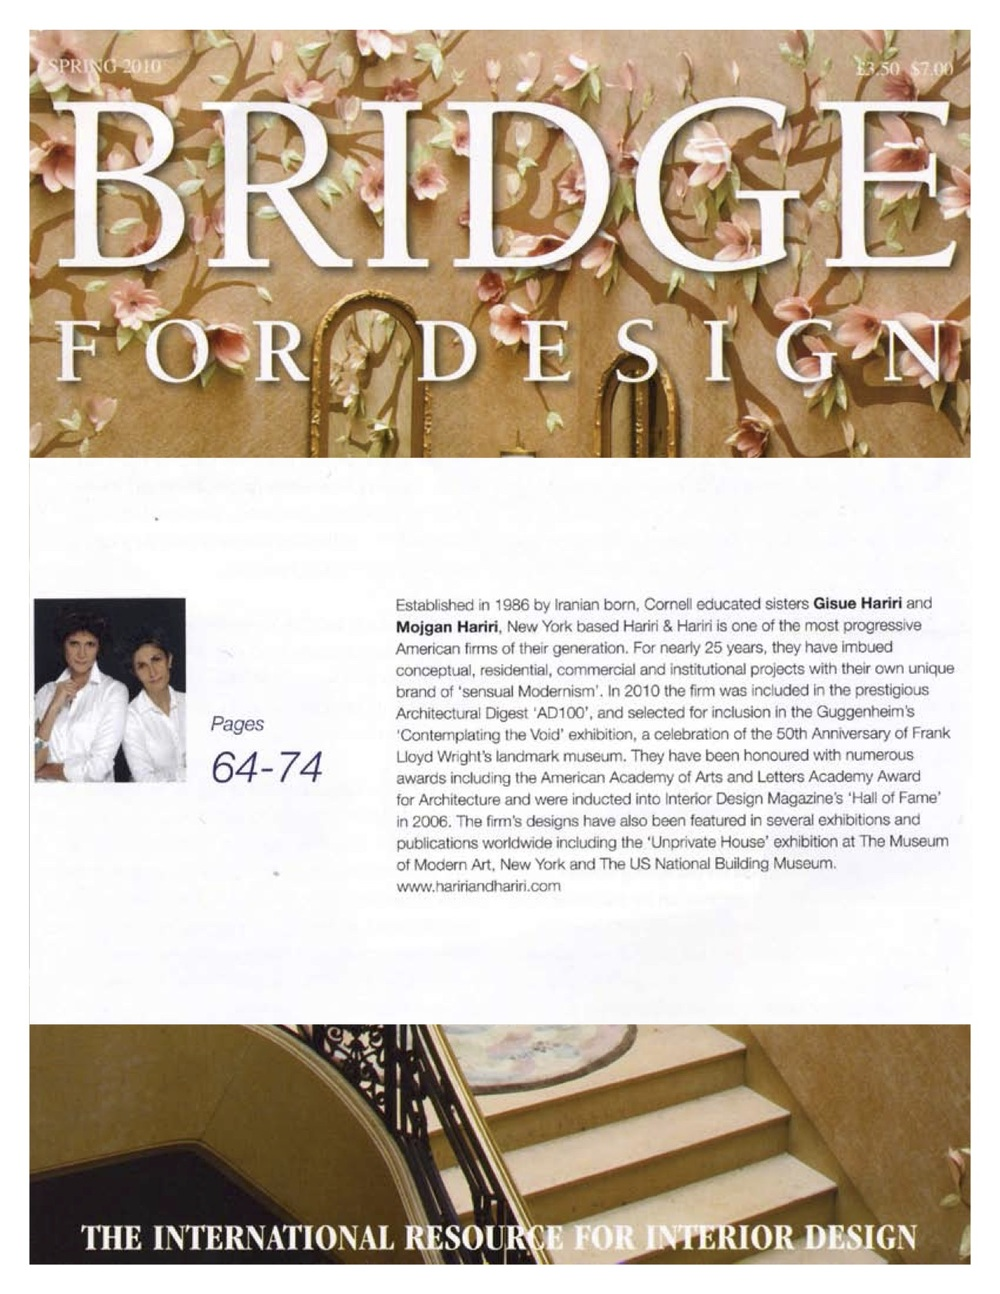 04.10 BRIDGE FOR DESIGN (PROFILE OF H&H)